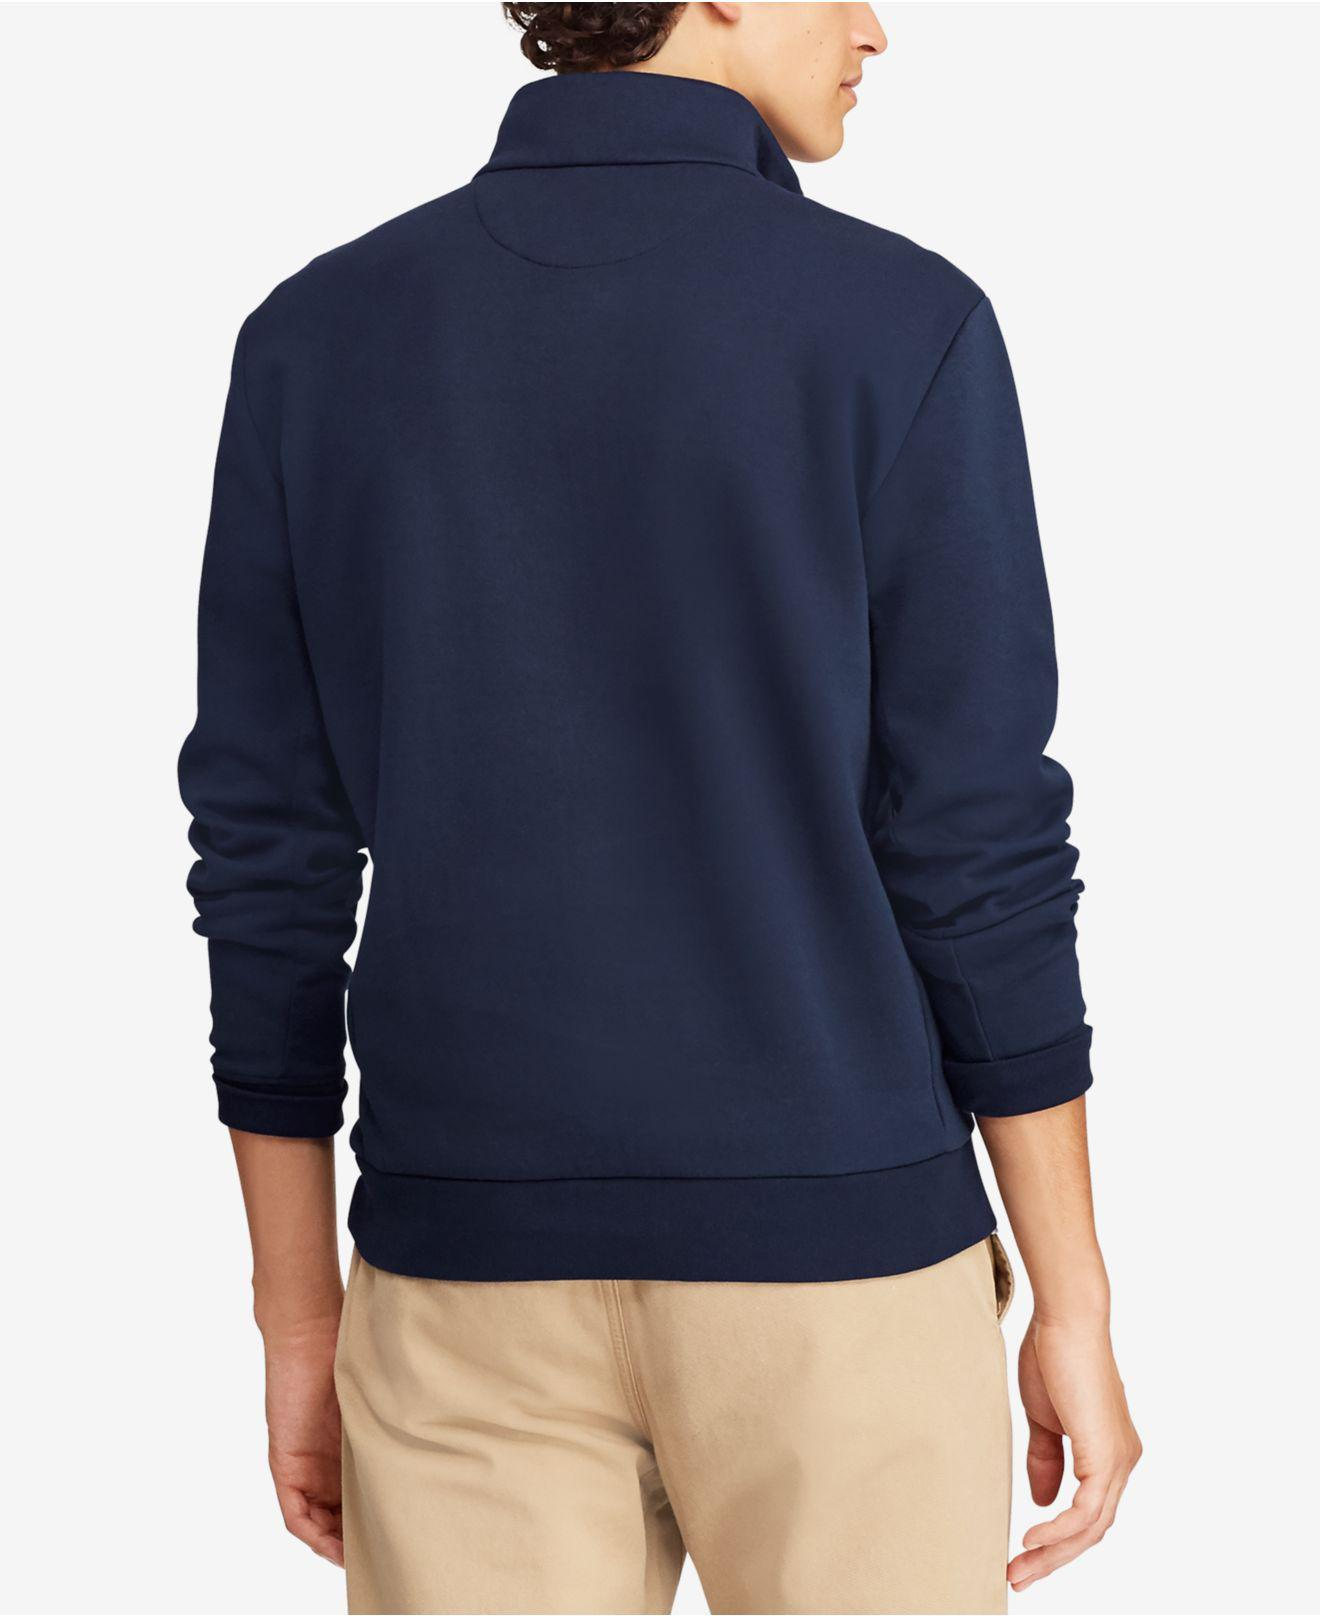 4a757e045e48 Lyst - Polo Ralph Lauren Double-knit Half-zip Pullover in Blue for Men